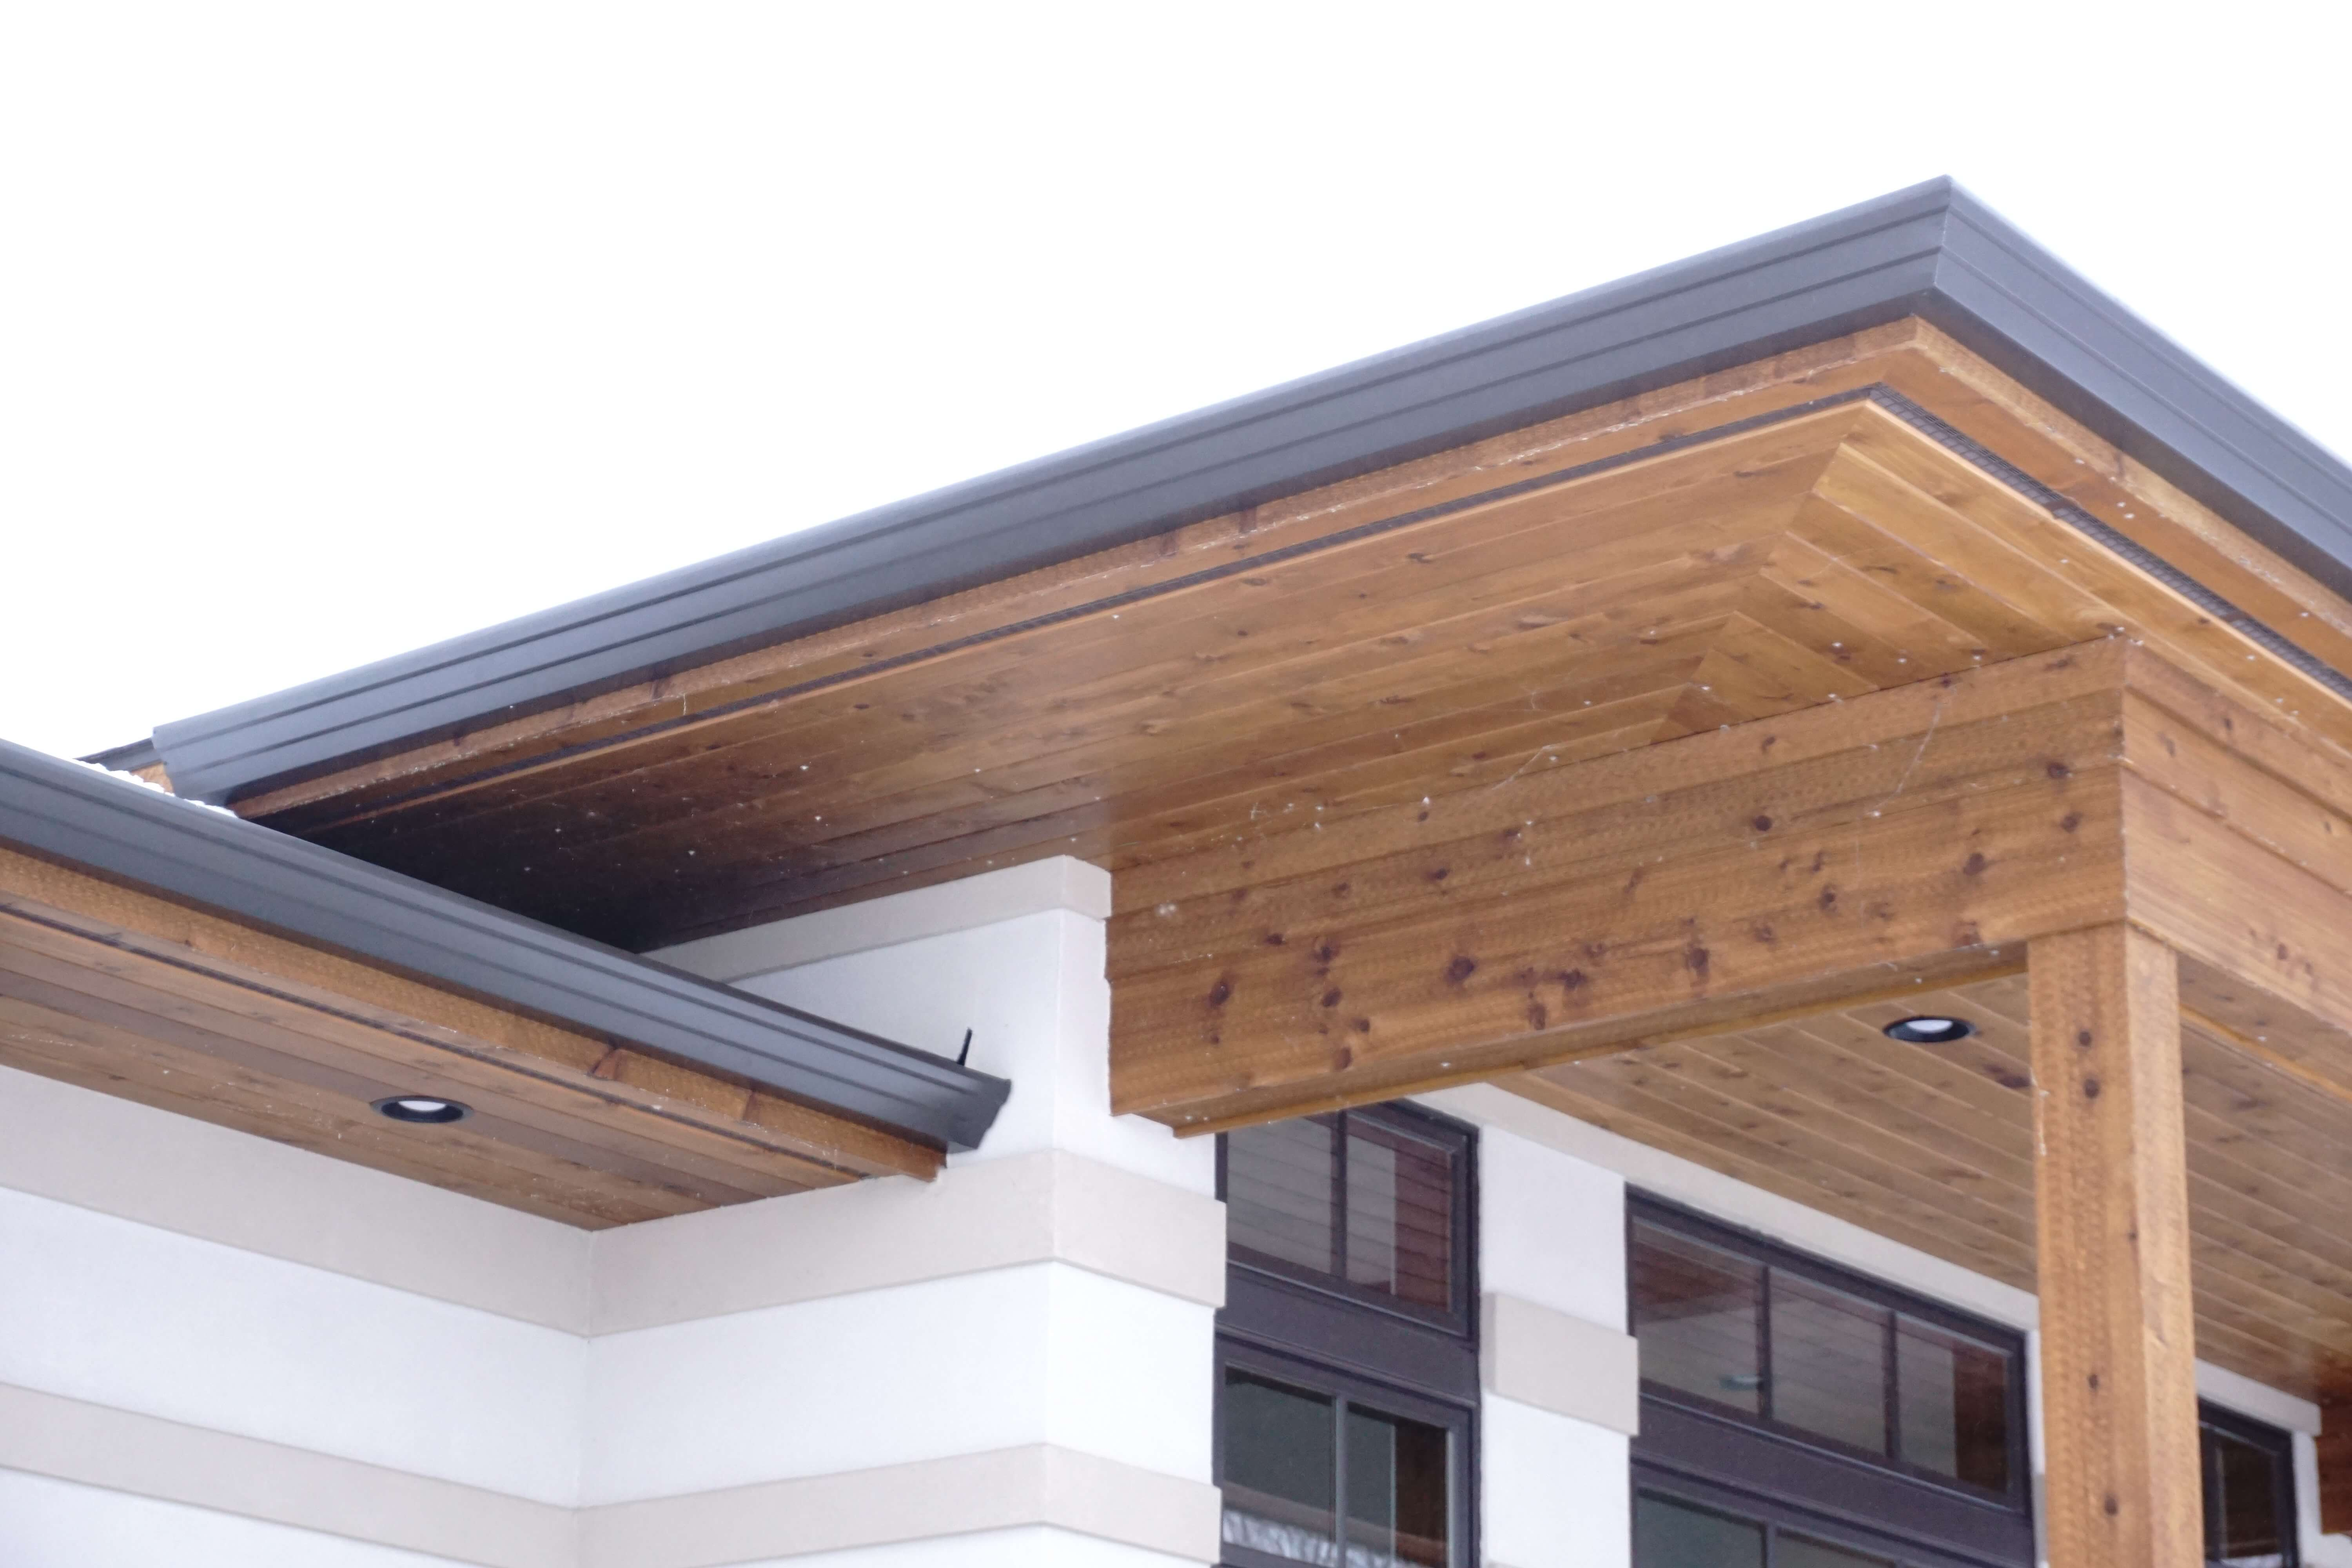 Designer Series Gutters from Advantage Seamless Gutters